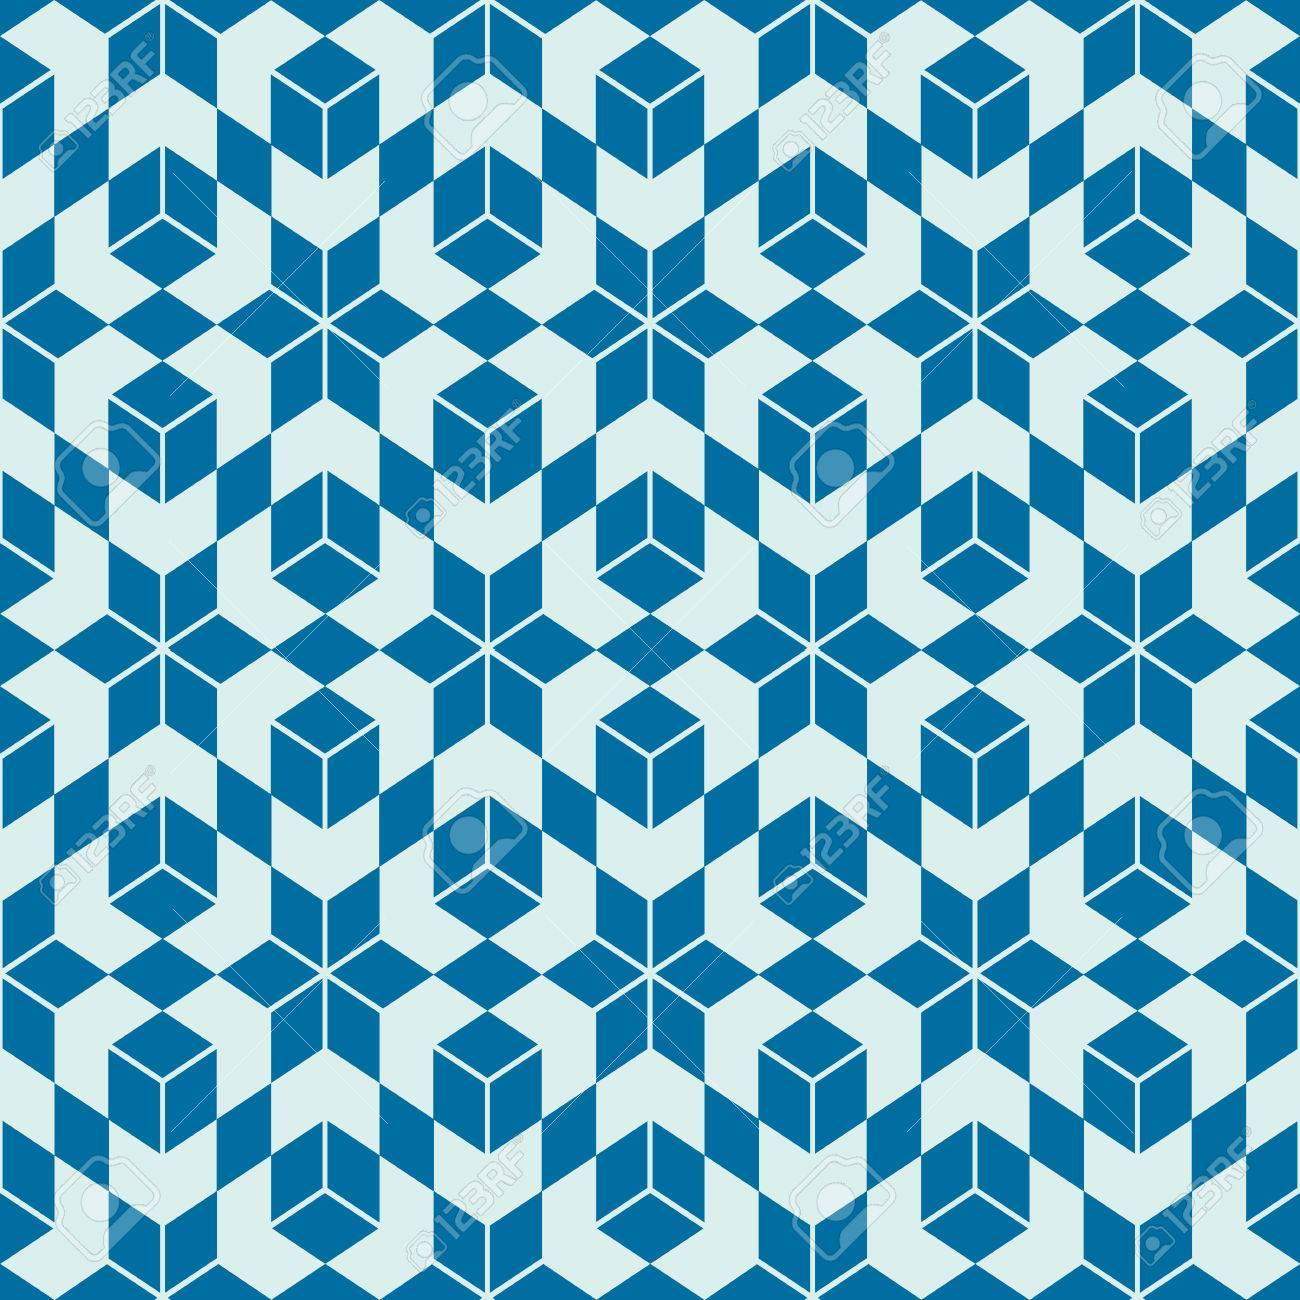 Graphic Ethnic Ornamental Tile, Vector Repeated Pattern Made ...